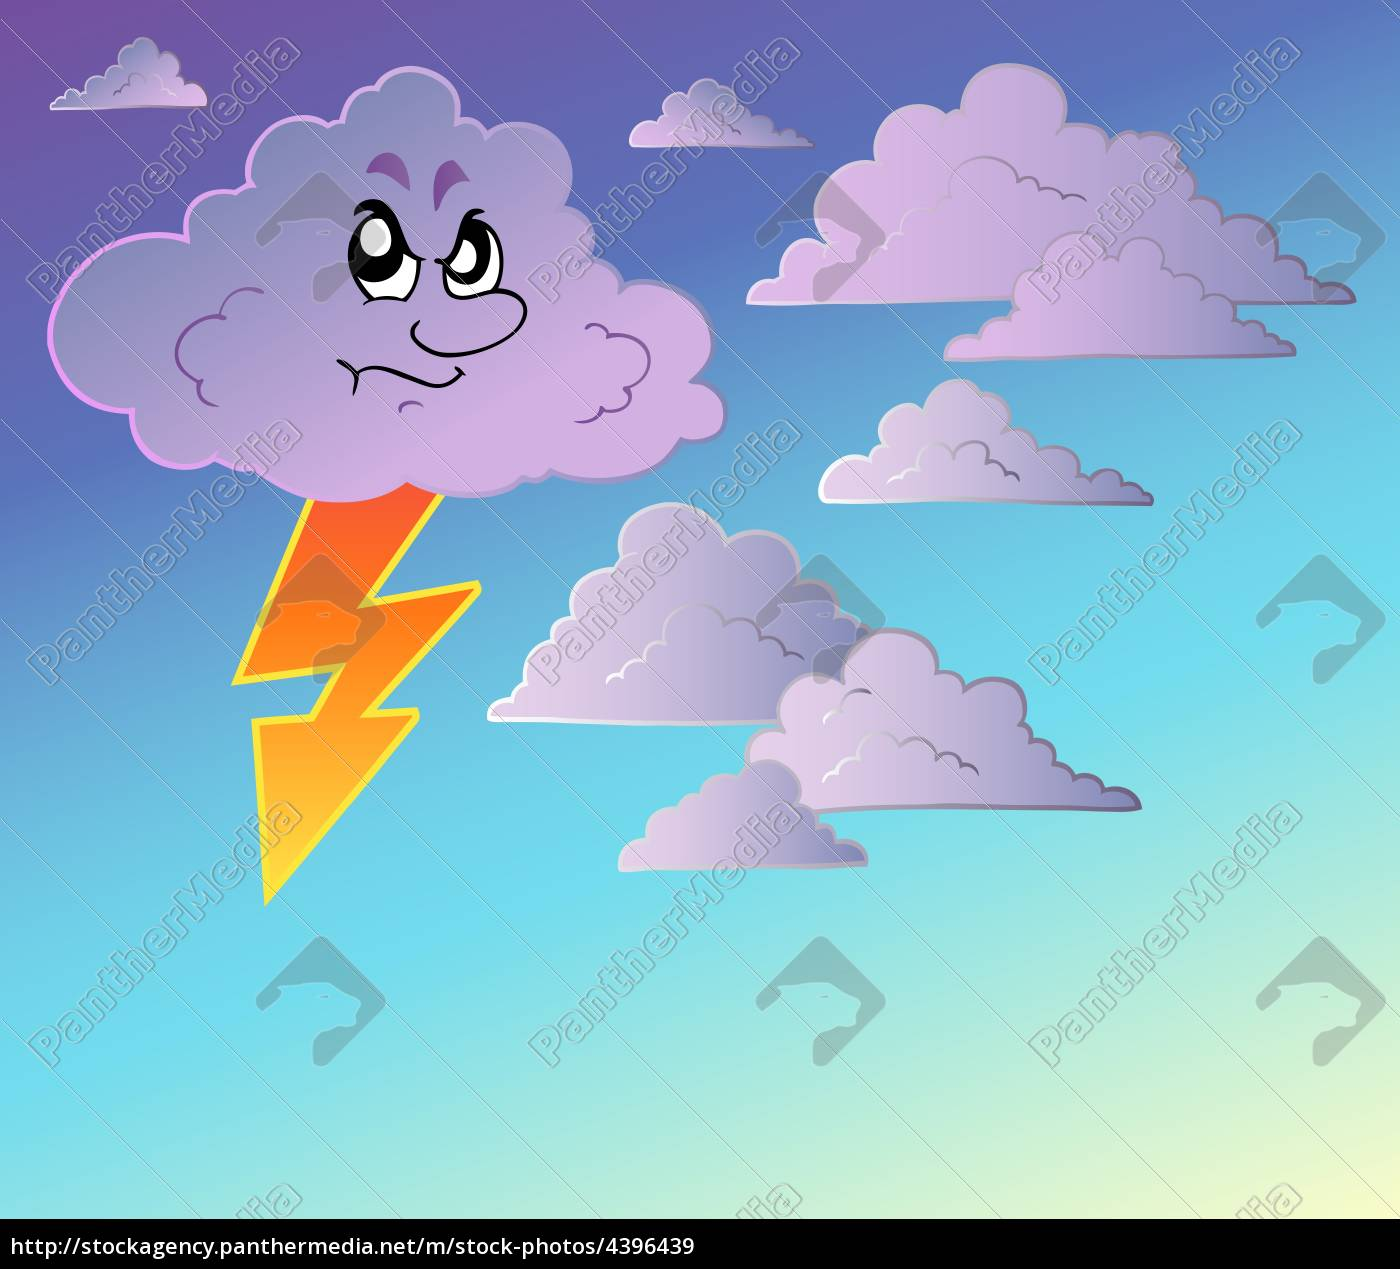 Stormy Sky With Cartoon Clouds Stock Photo 4396439 Panthermedia Stock Agency Cartoon cloud animation, clouds cartoon, blue, white, hand png. stock photo 4396439 stormy sky with cartoon clouds